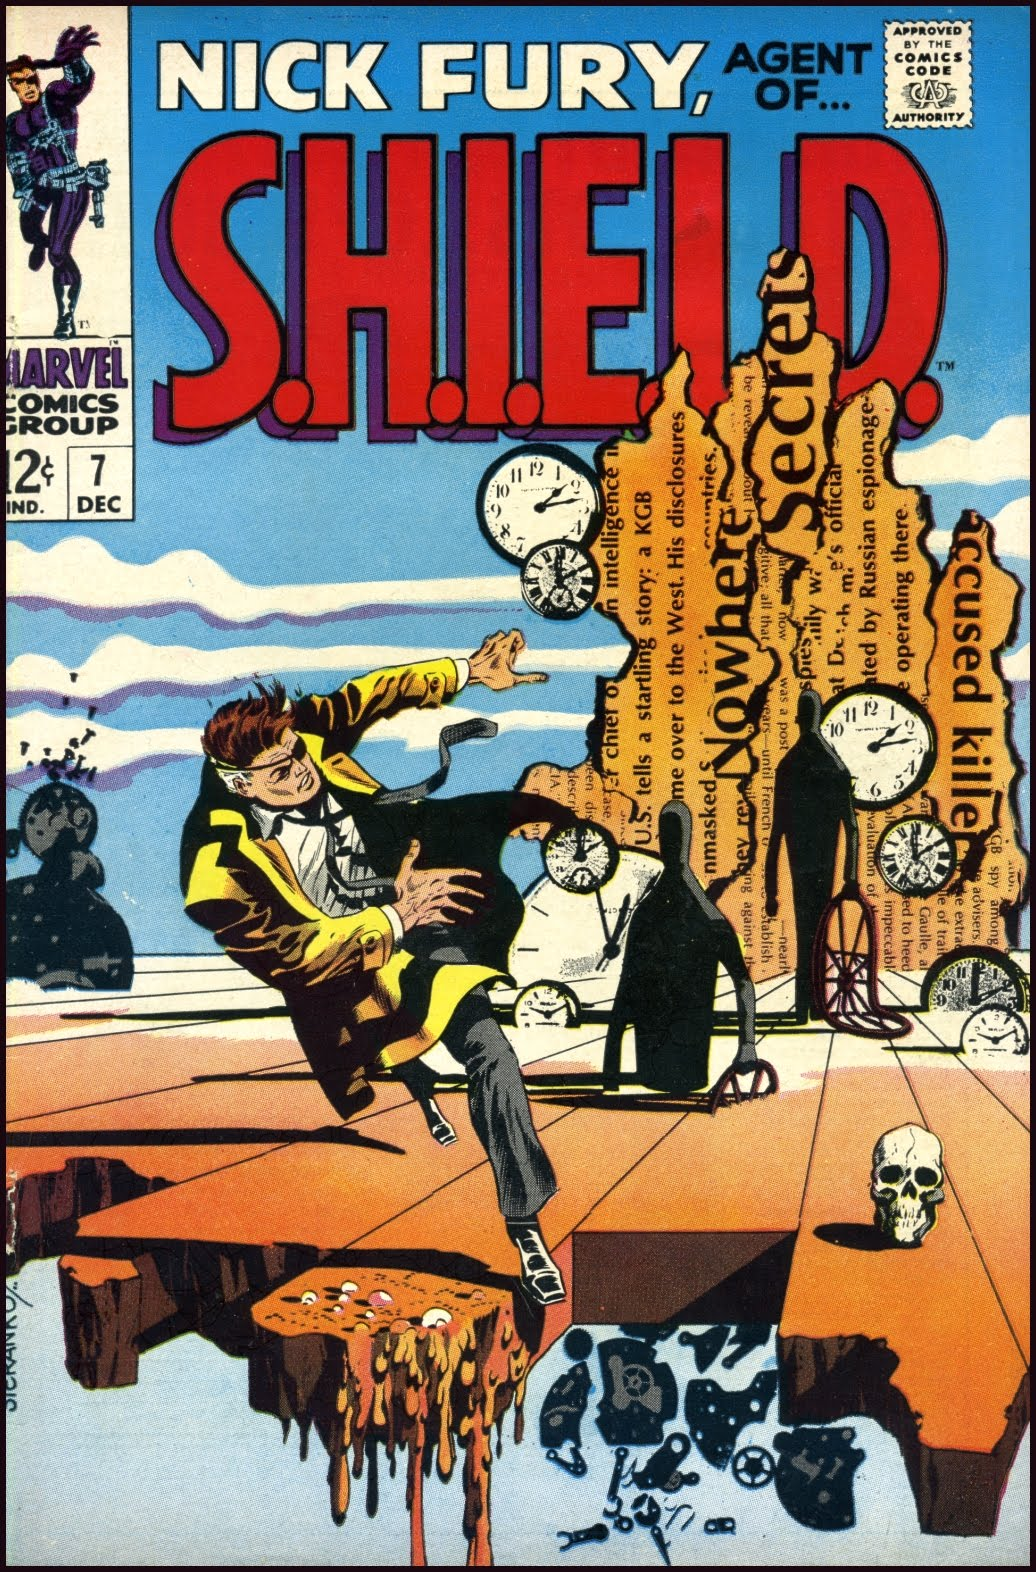 Cover by Steranko Tenth Letter of the